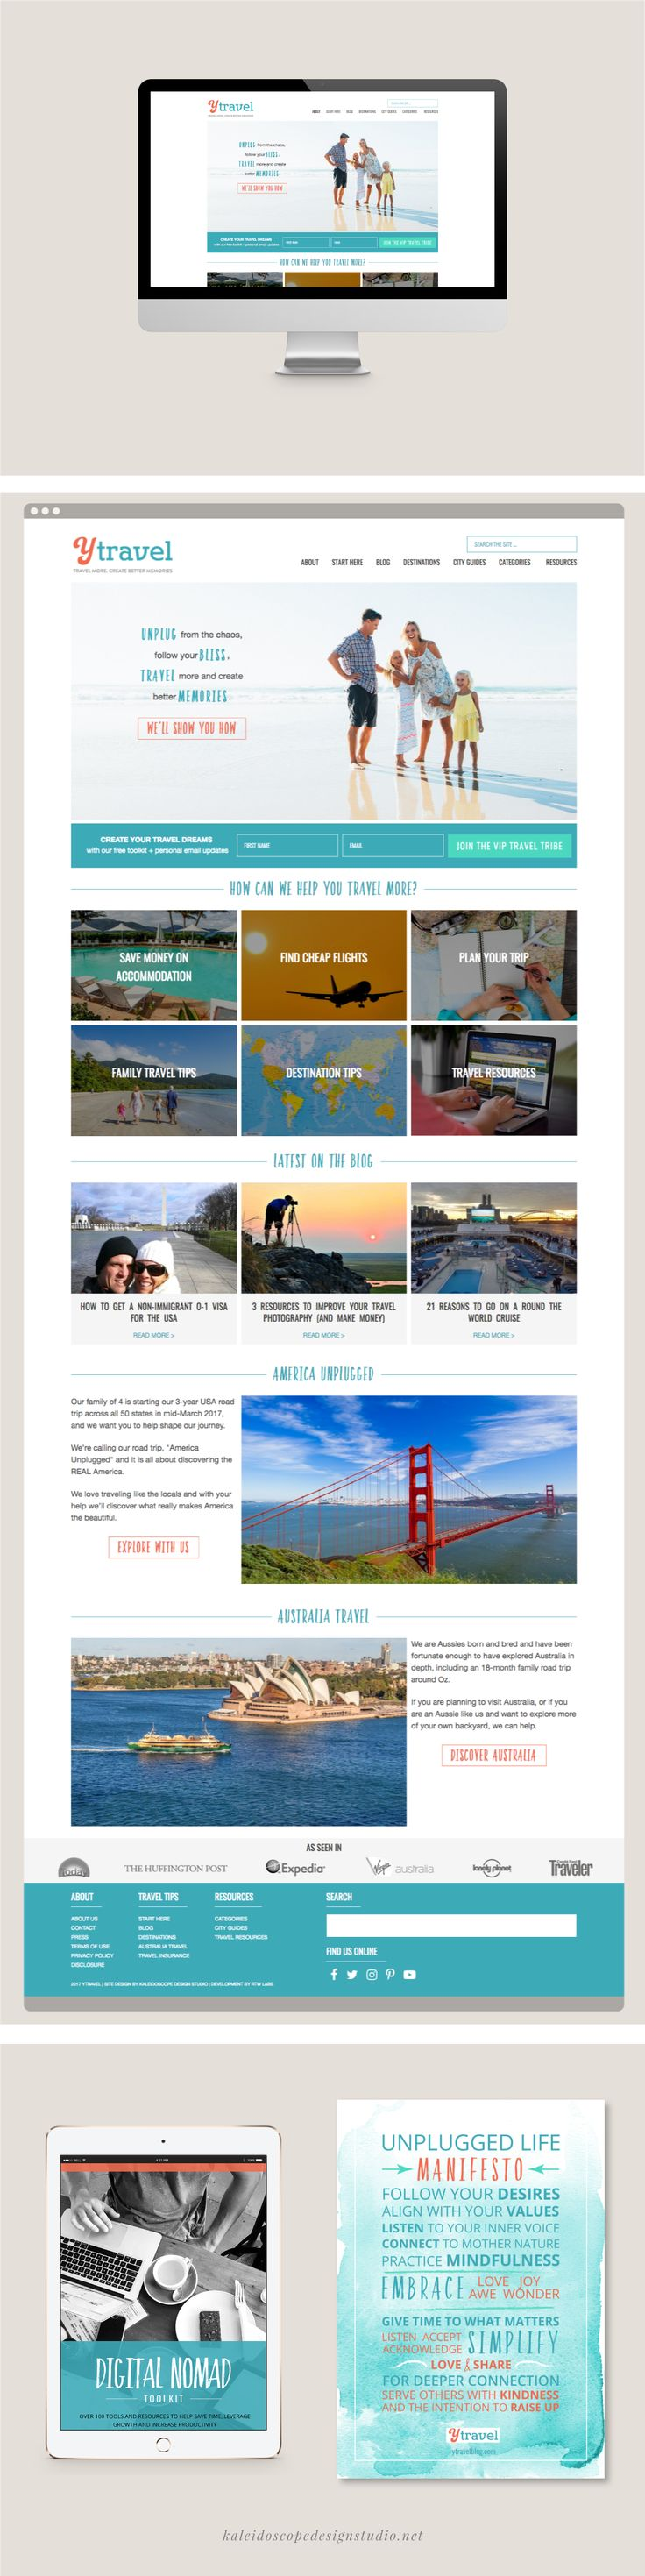 yTravel Blog Website Design - Kaleidoscope Design Studio